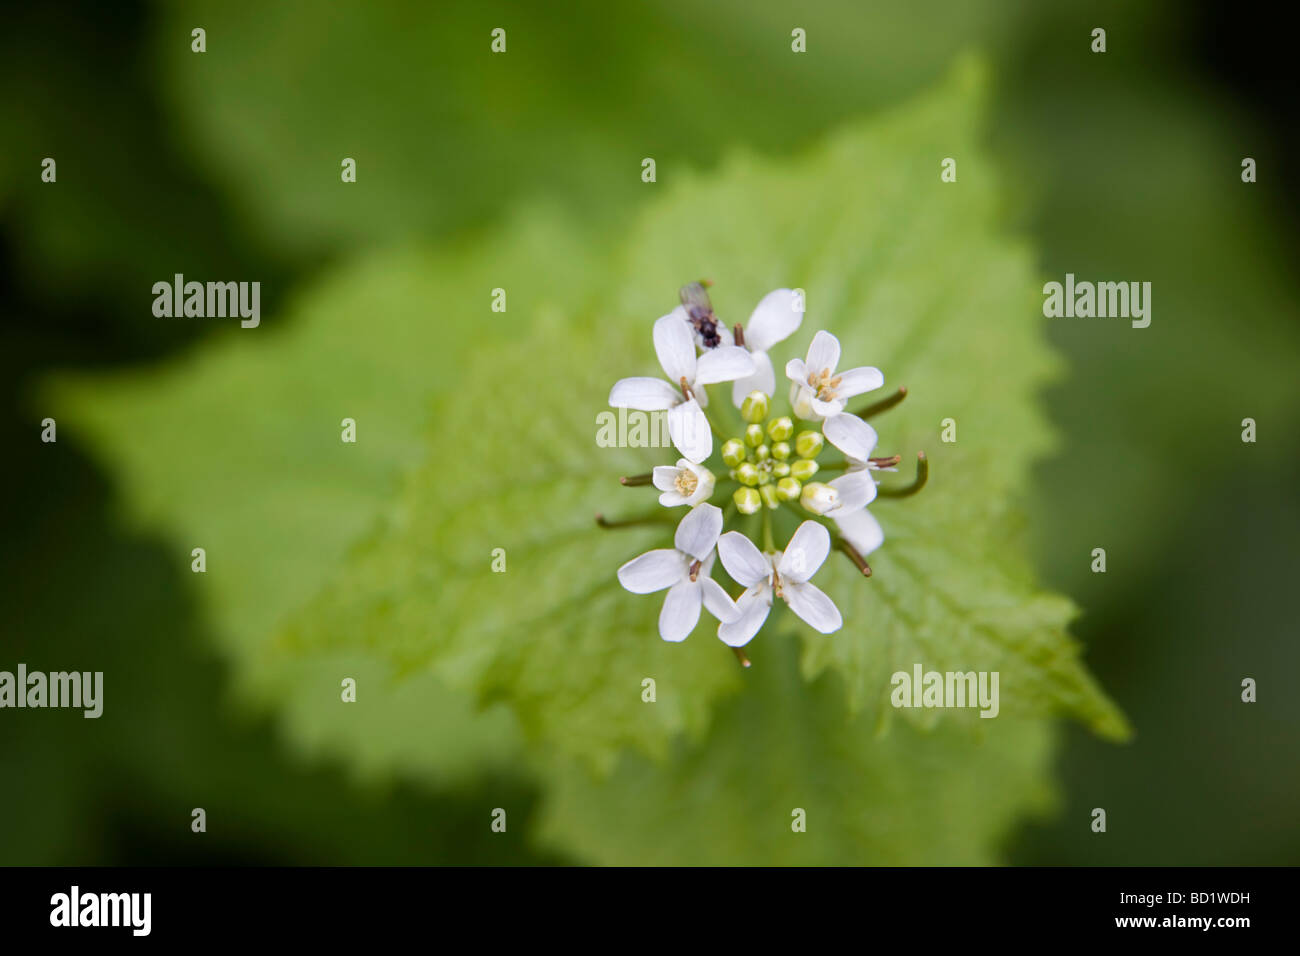 garlic mustard Alliaria petiolata with insect on flower Stock Photo